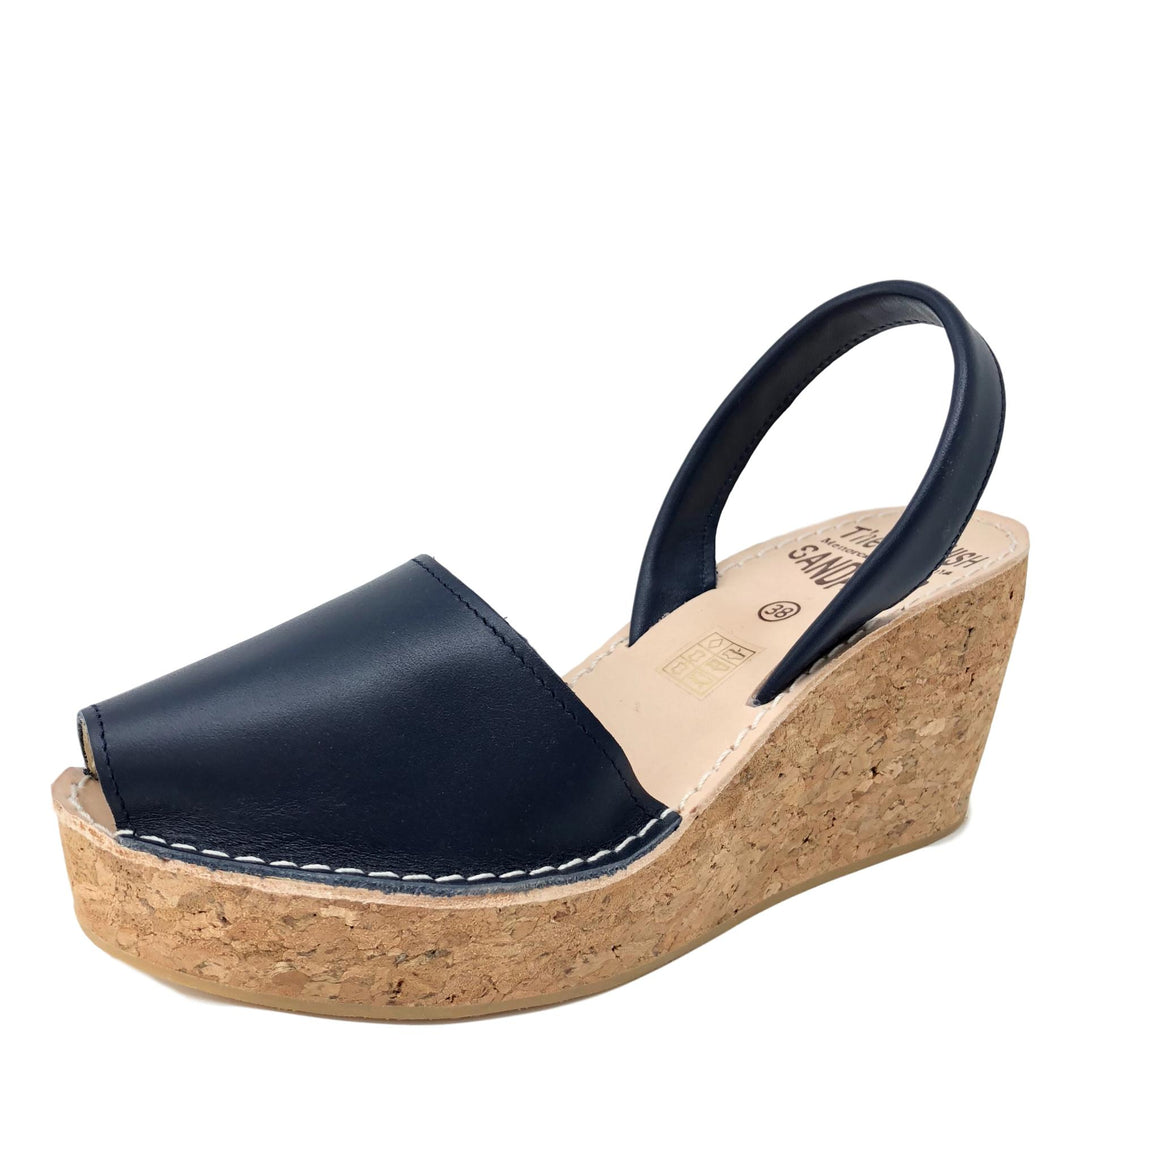 Navy blue cork wedge